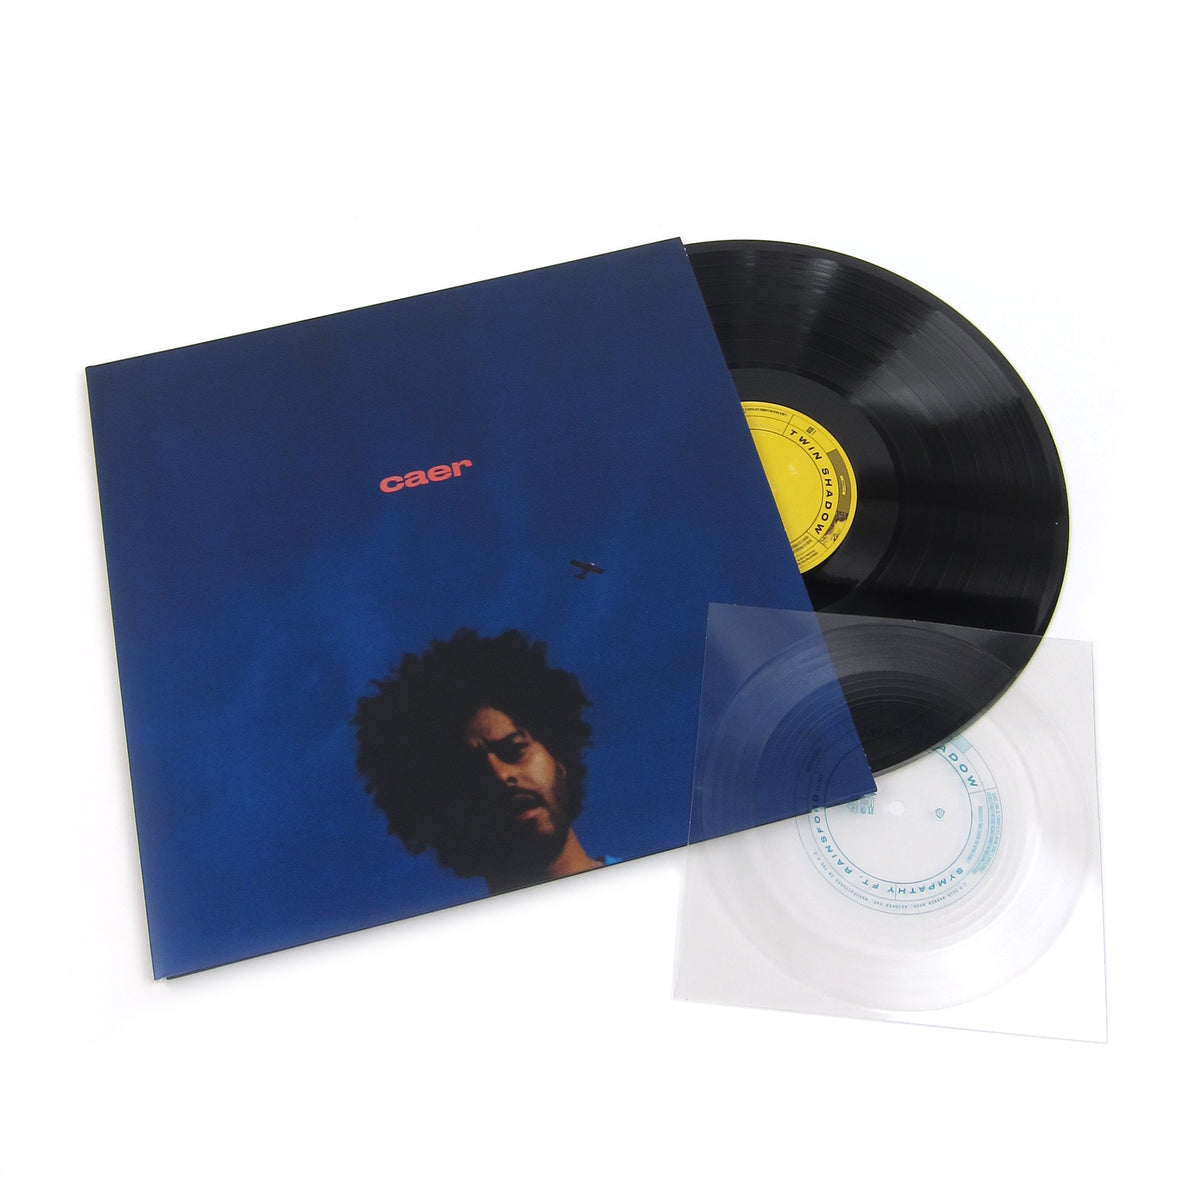 Twin Shadow: Caer Vinyl LP+Flexidisc